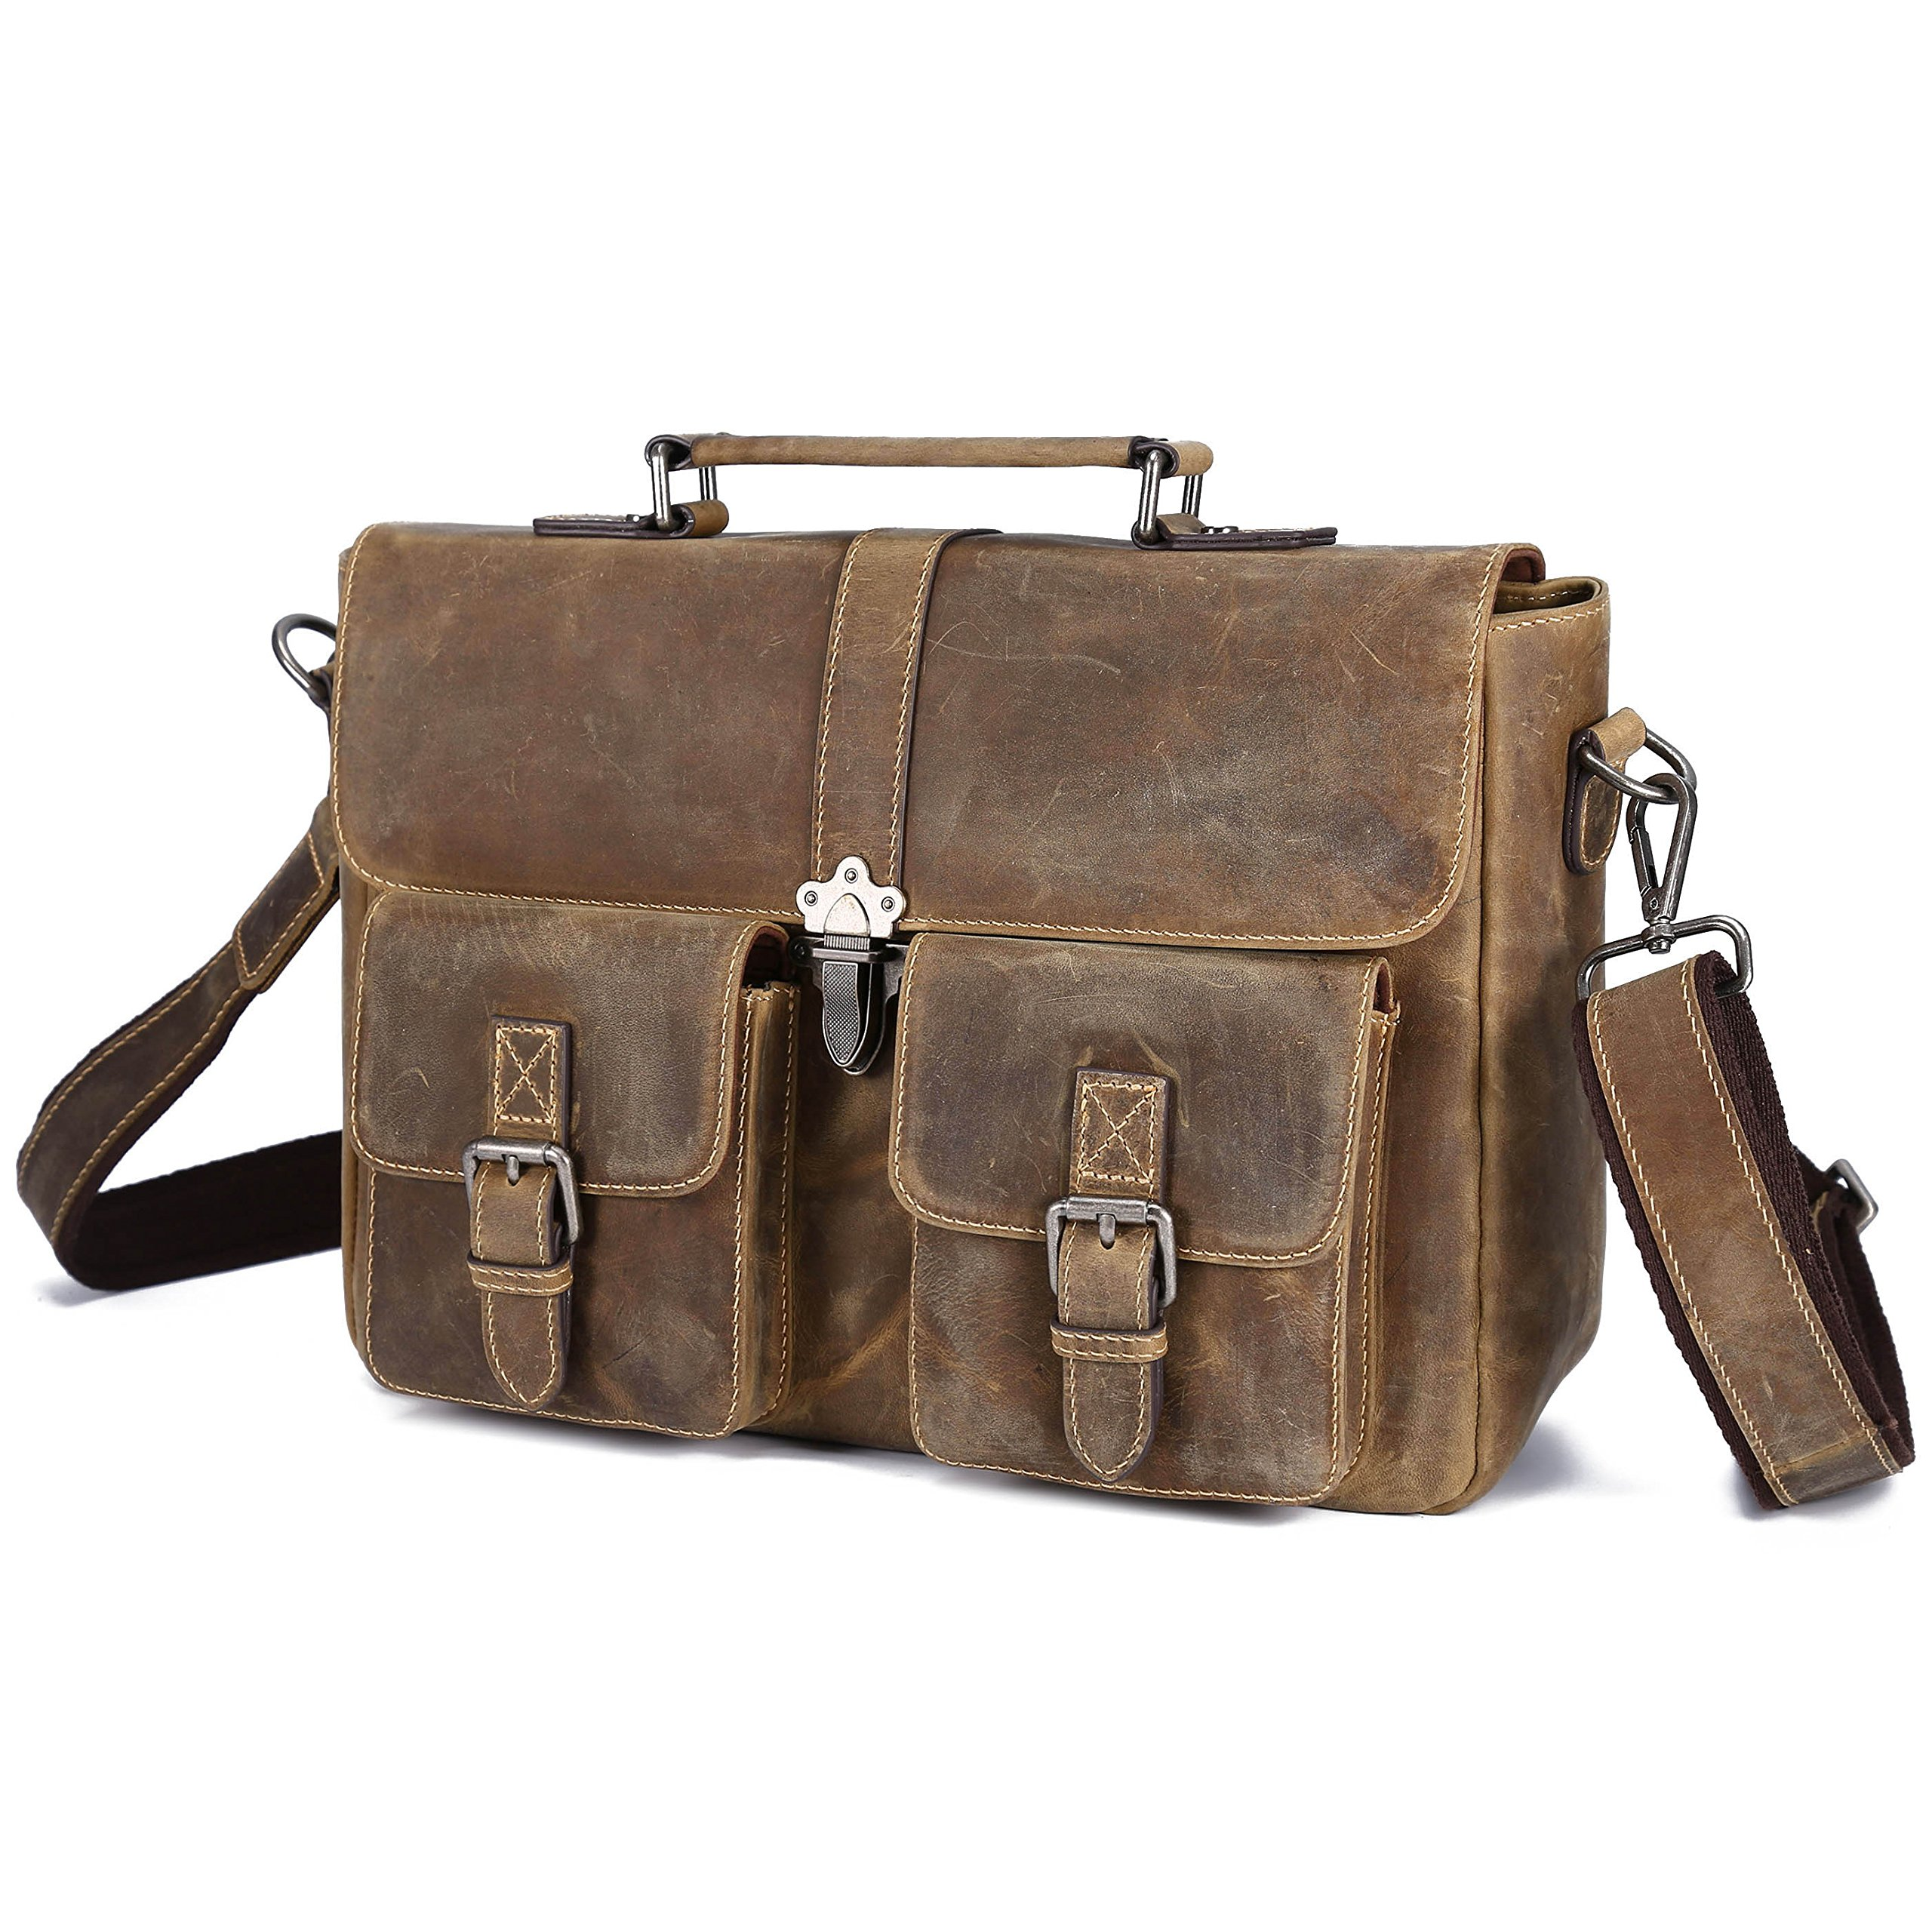 BAIGIO Vintage Leather Briefcase Antique Messenger Bag 13'' Laptop Shoulder Handbag (Brown) by BAIGIO